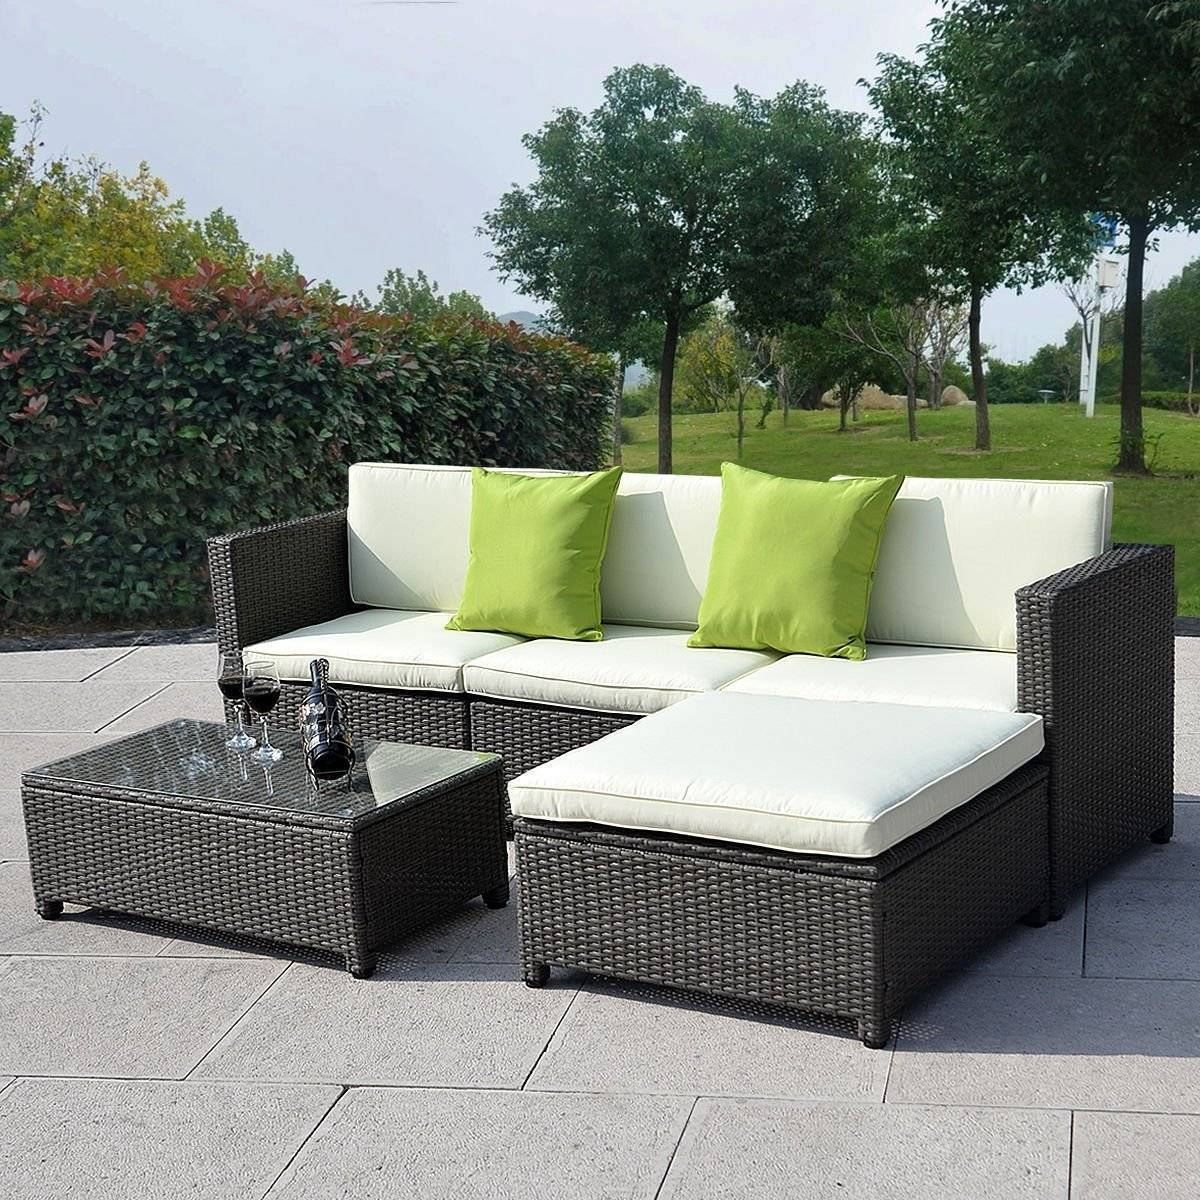 Furniture: Outdoor Wicker Patio Furniture Chairs With The with Outdoor Sofas and Chairs (Image 7 of 15)